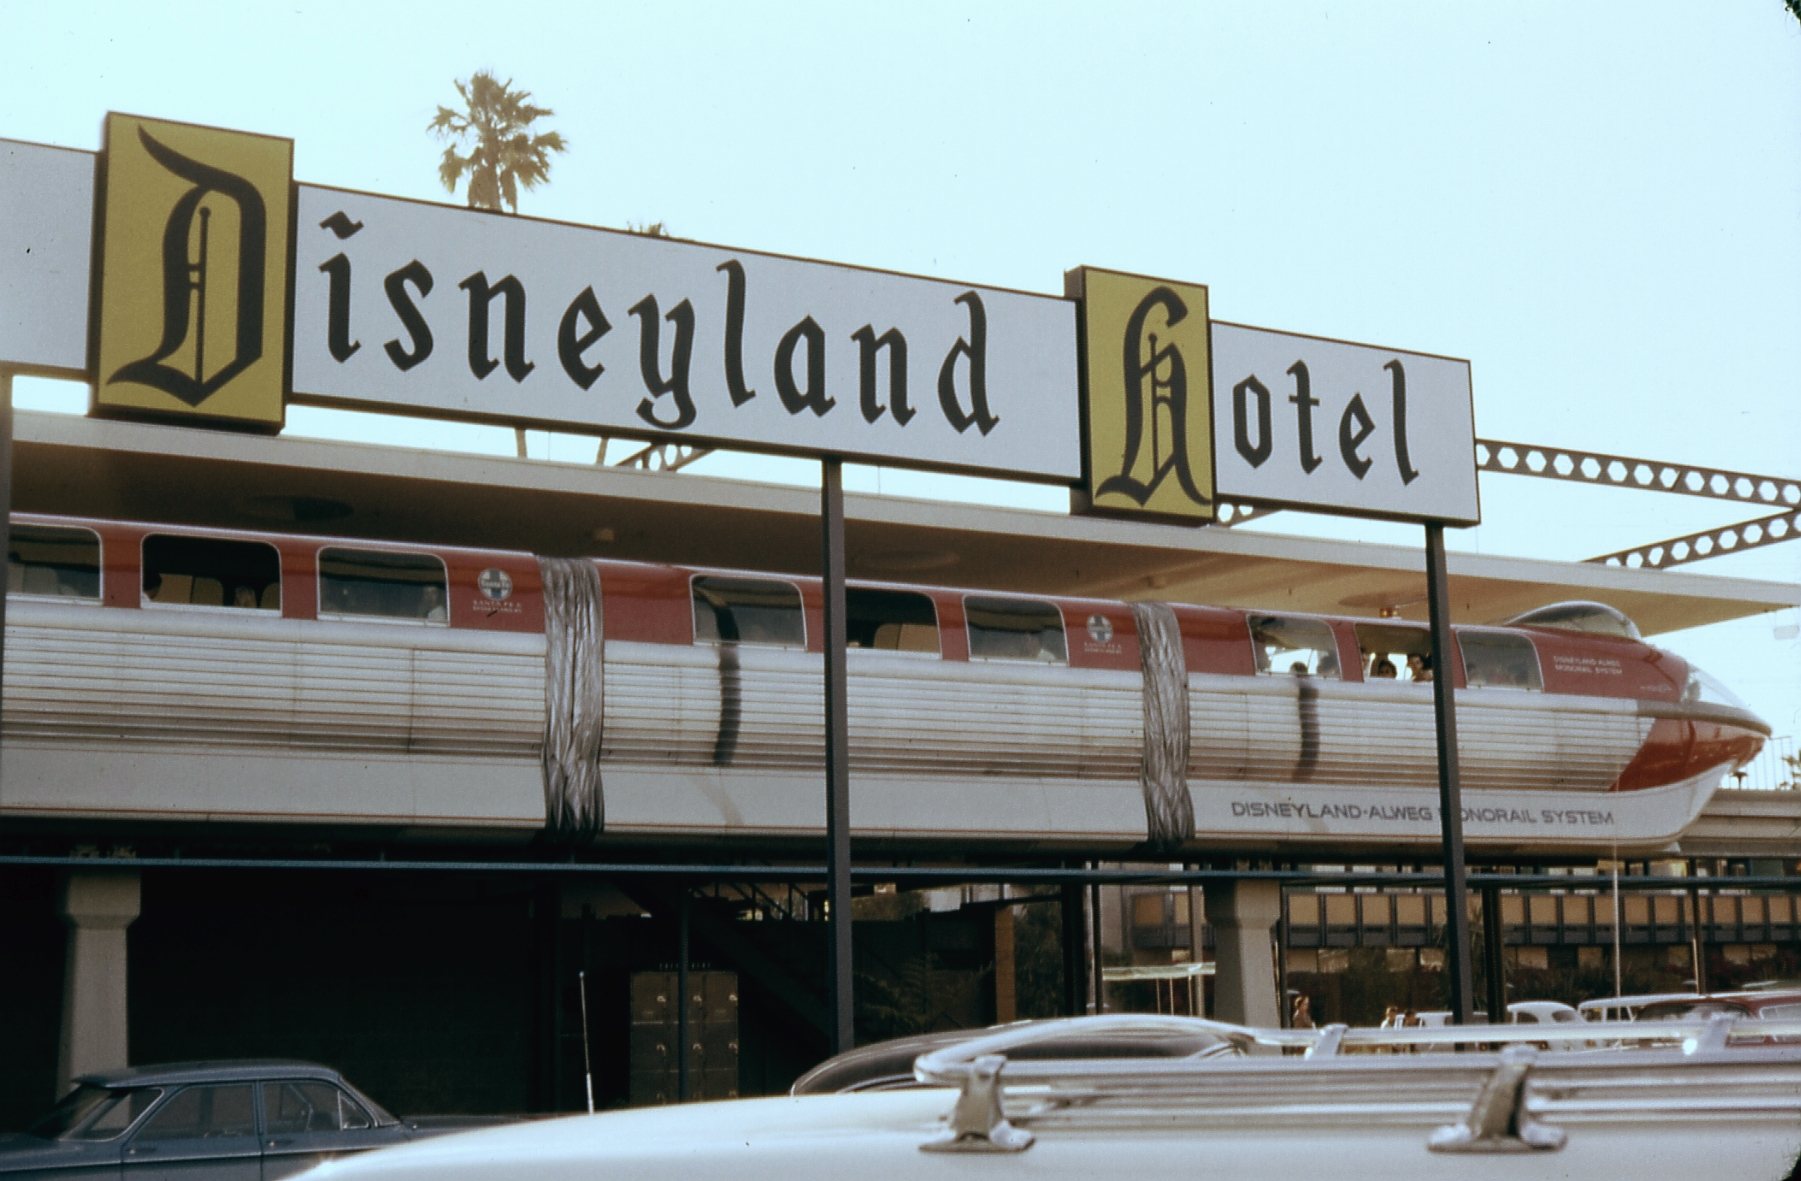 6308-disneylandhotelmonorailstation